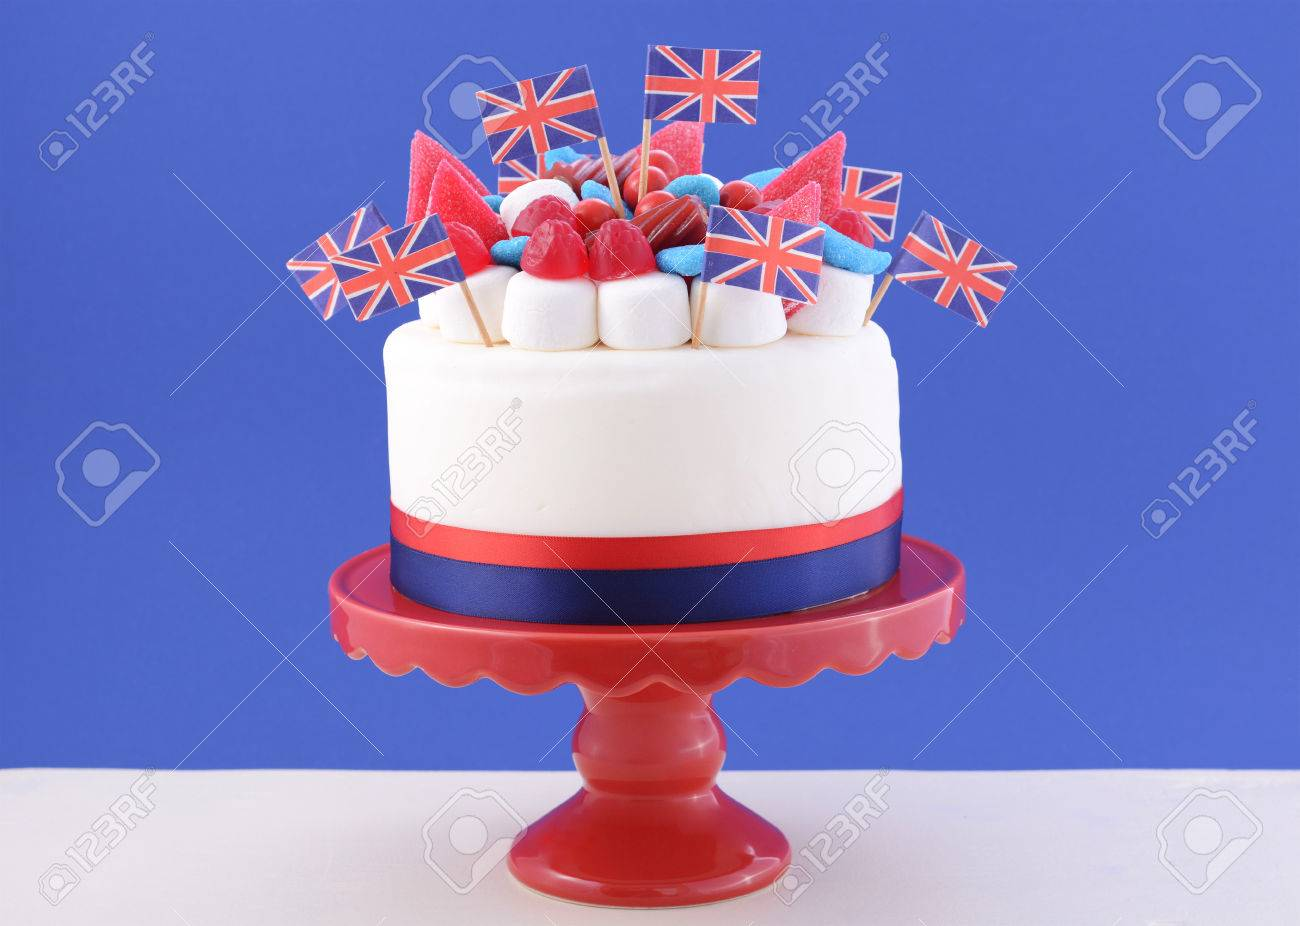 uk celebration cake with flags marshmallow and candy decorations